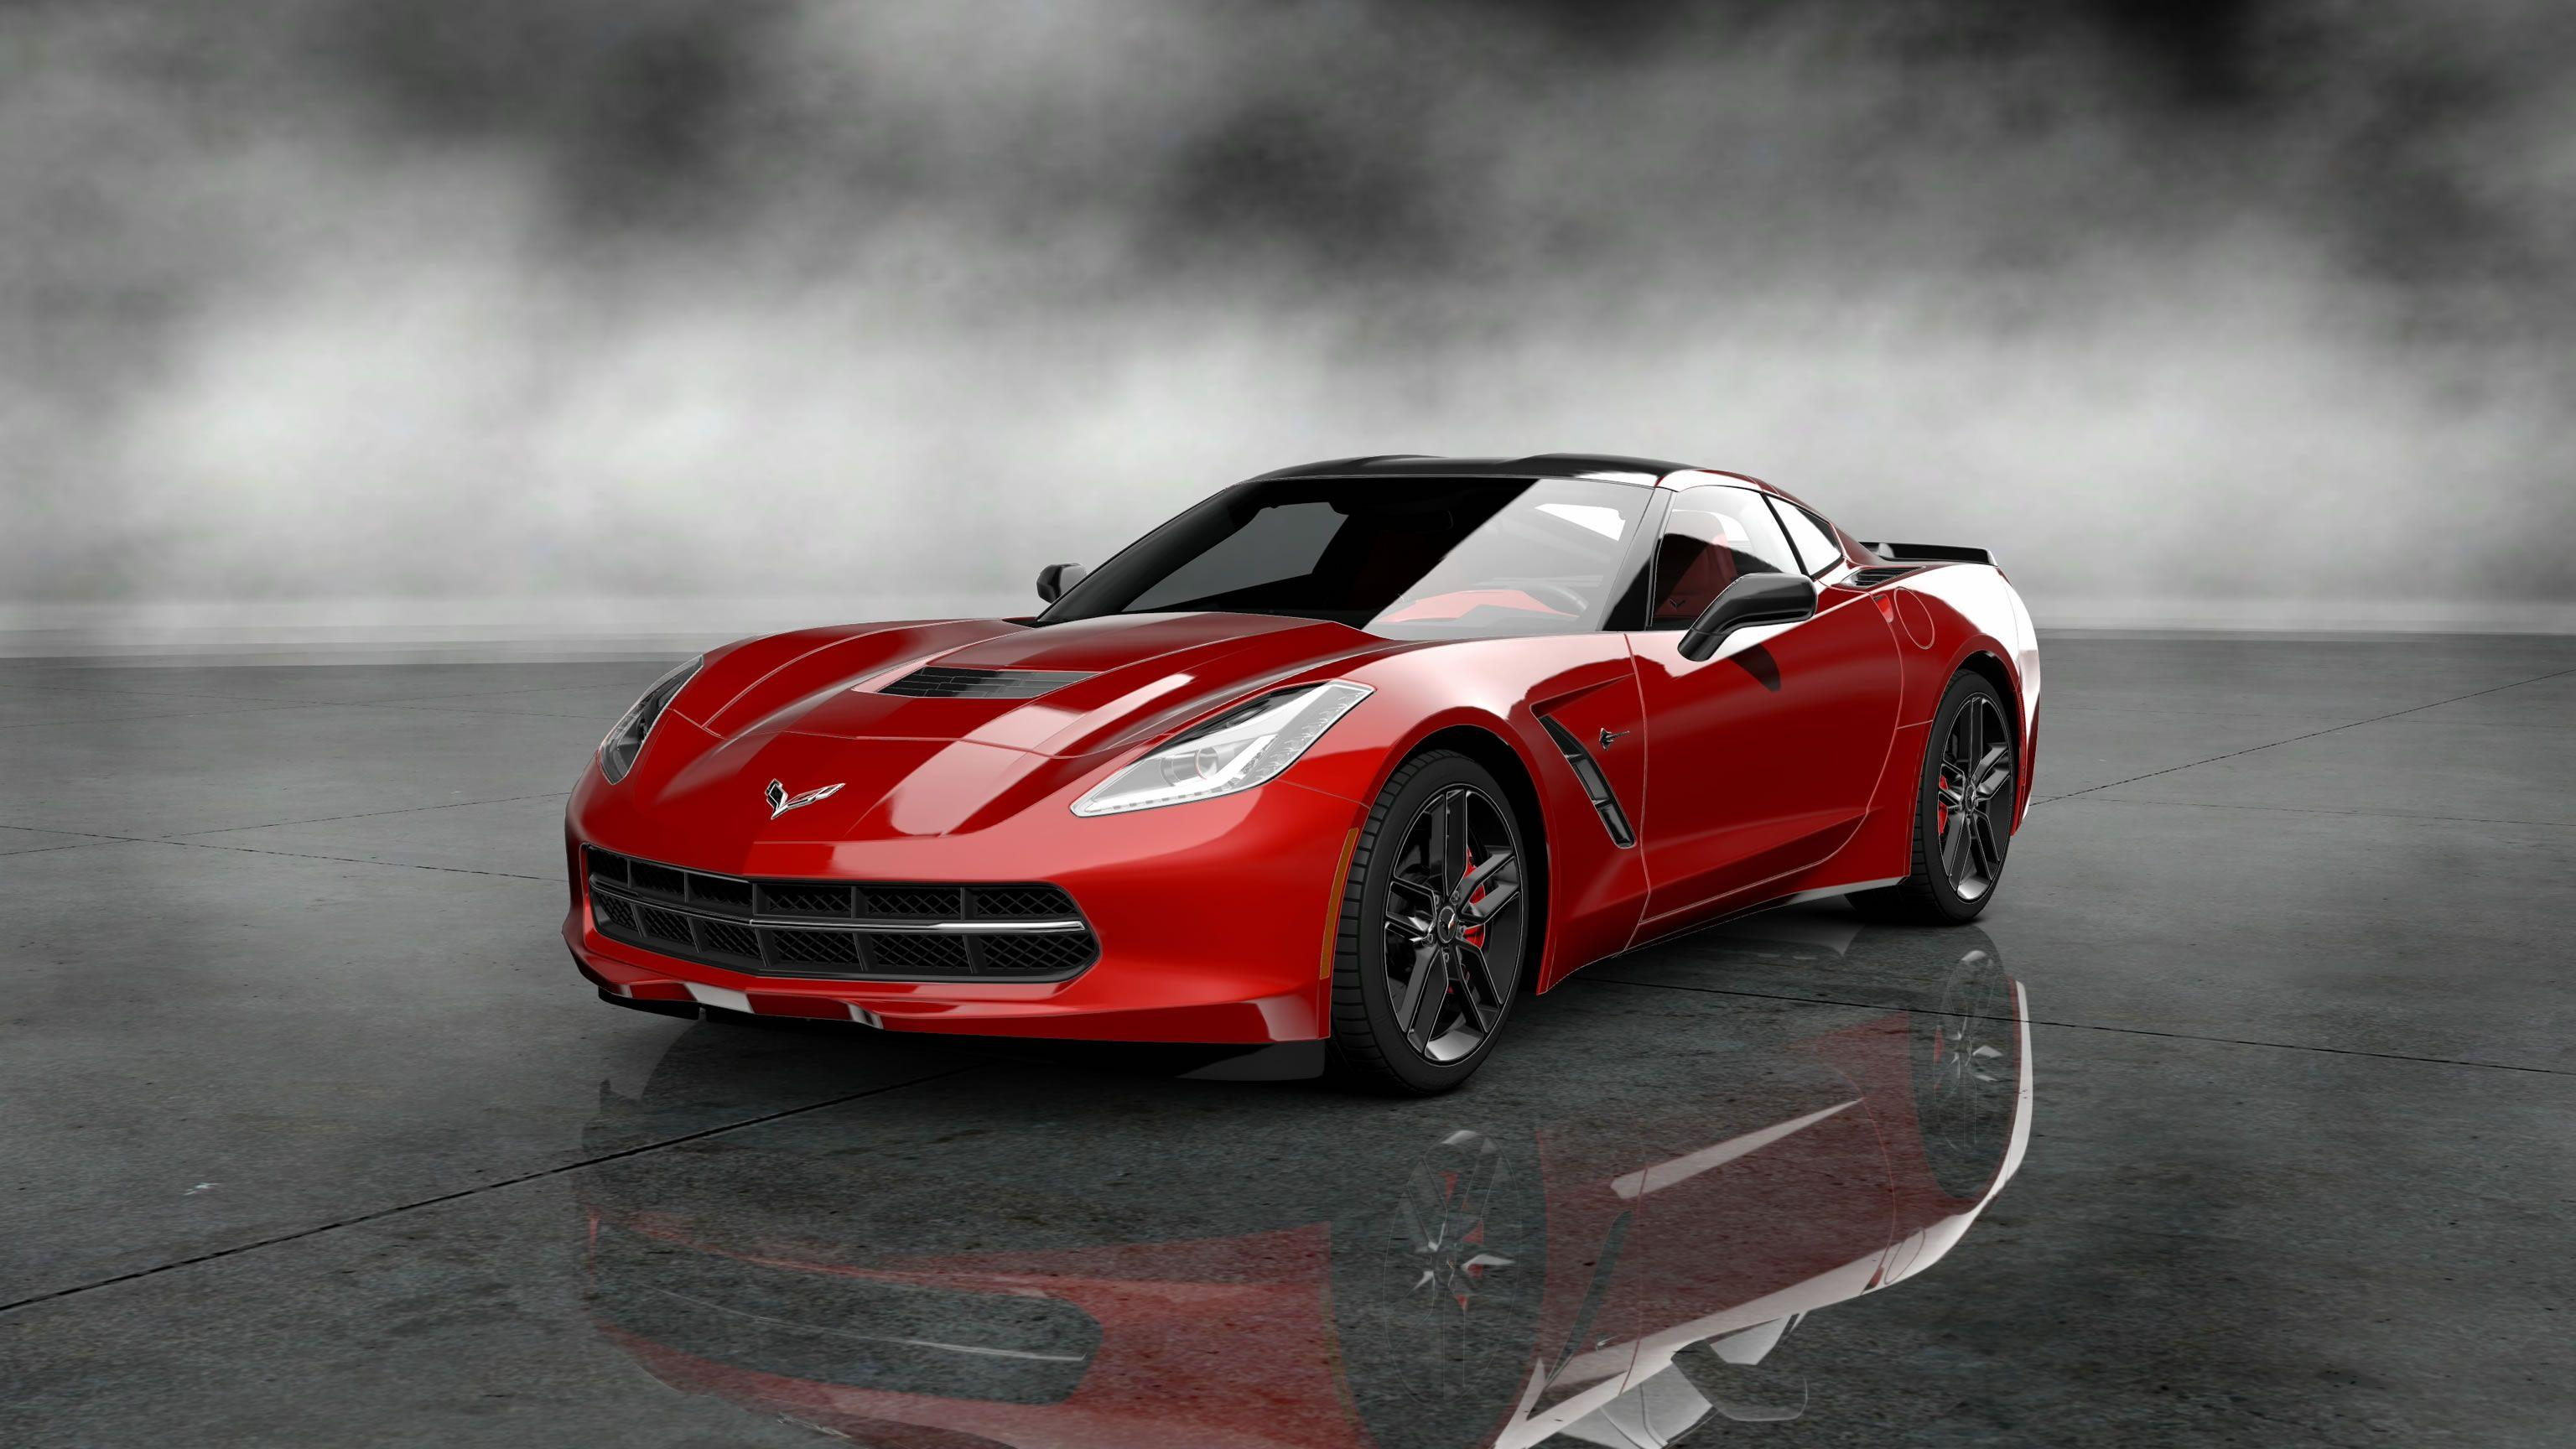 corvette wallpaper hd - photo #5